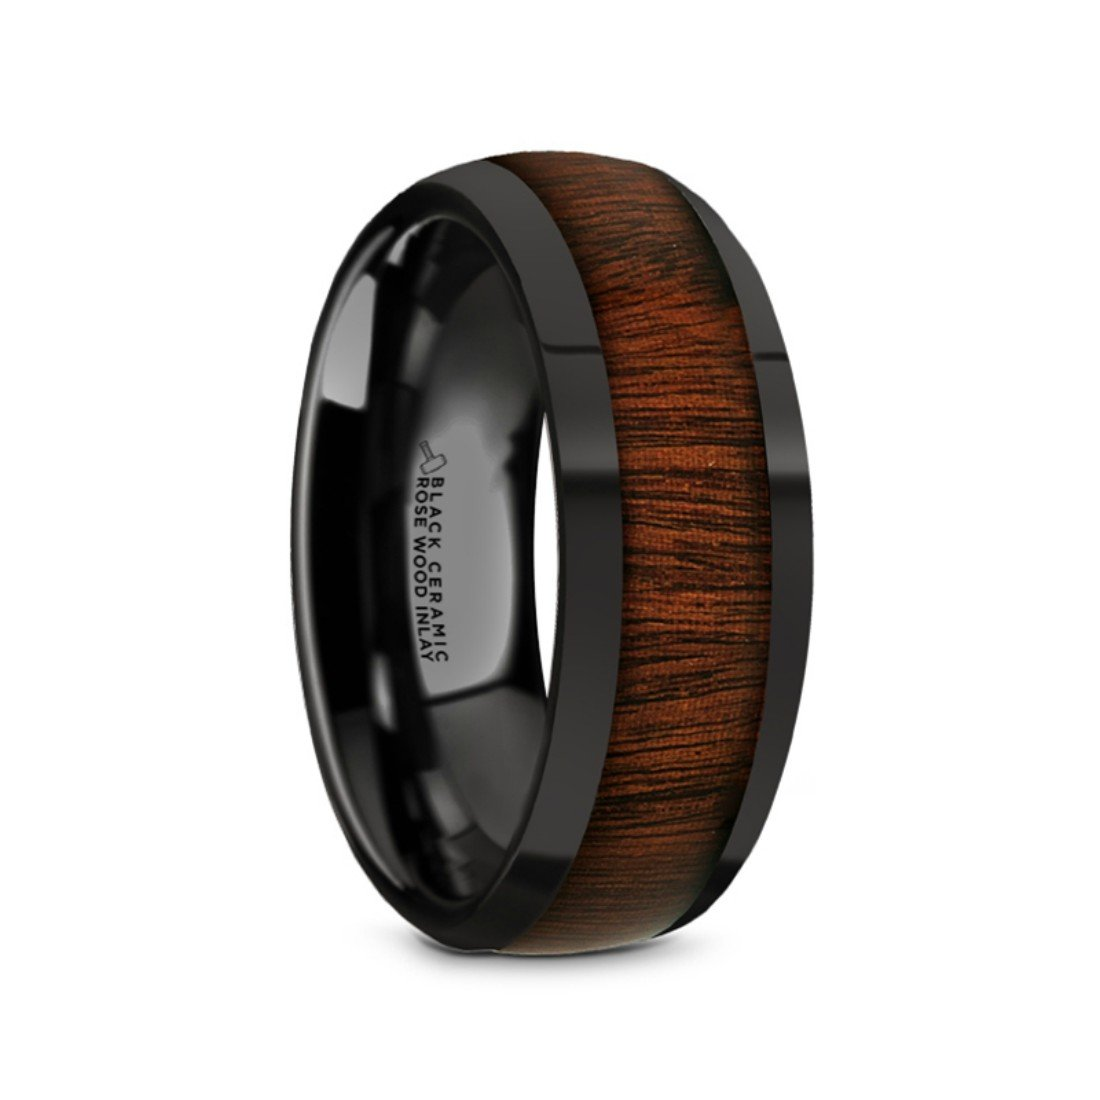 Thorsten Rosae Black Ceramic Domed Profile Polished Finish Men's Wedding Band with Genuine Fine Grain Rose Wood Inlay 8mm Custom Personalized Inside Engraved by Roy Rose Jewelry by Thorsten (Image #1)